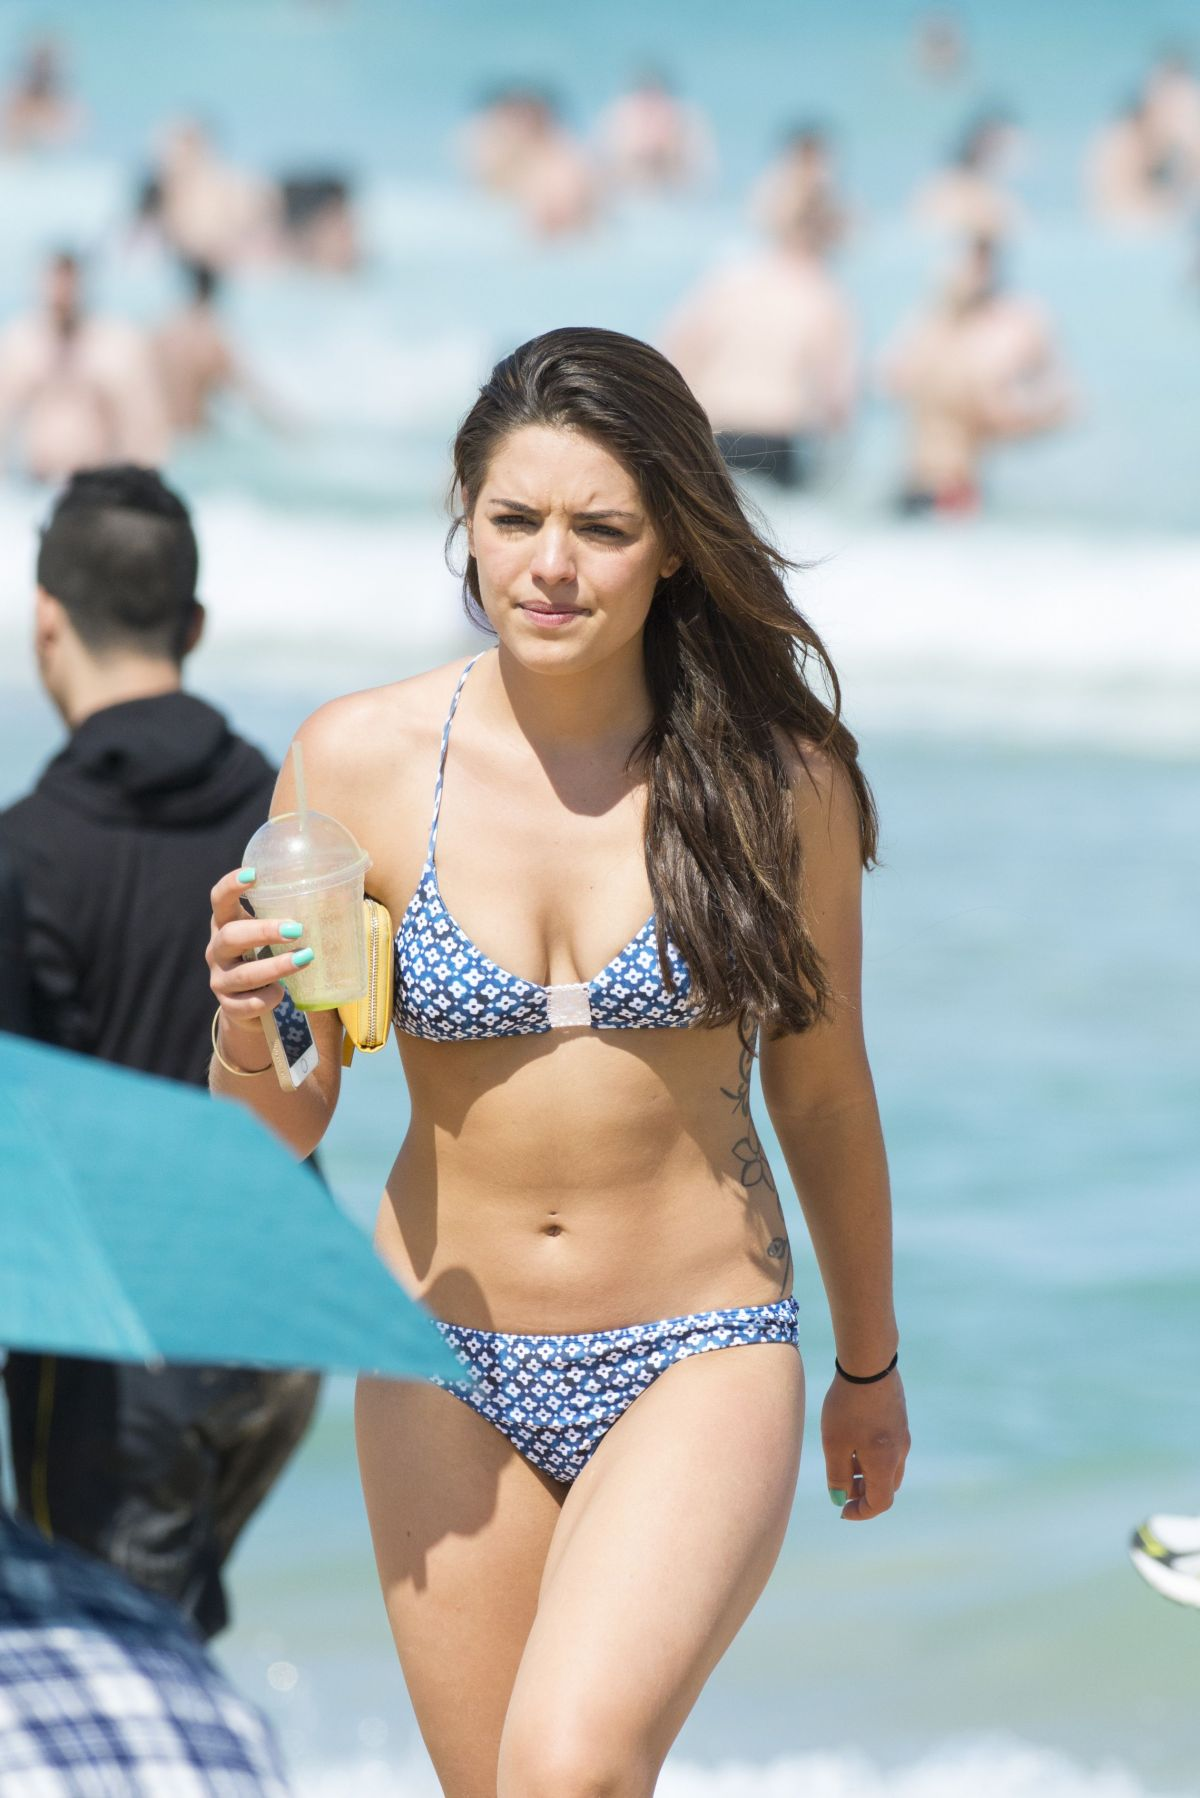 Pics Olympia Valance naked (86 foto and video), Ass, Bikini, Instagram, in bikini 2006